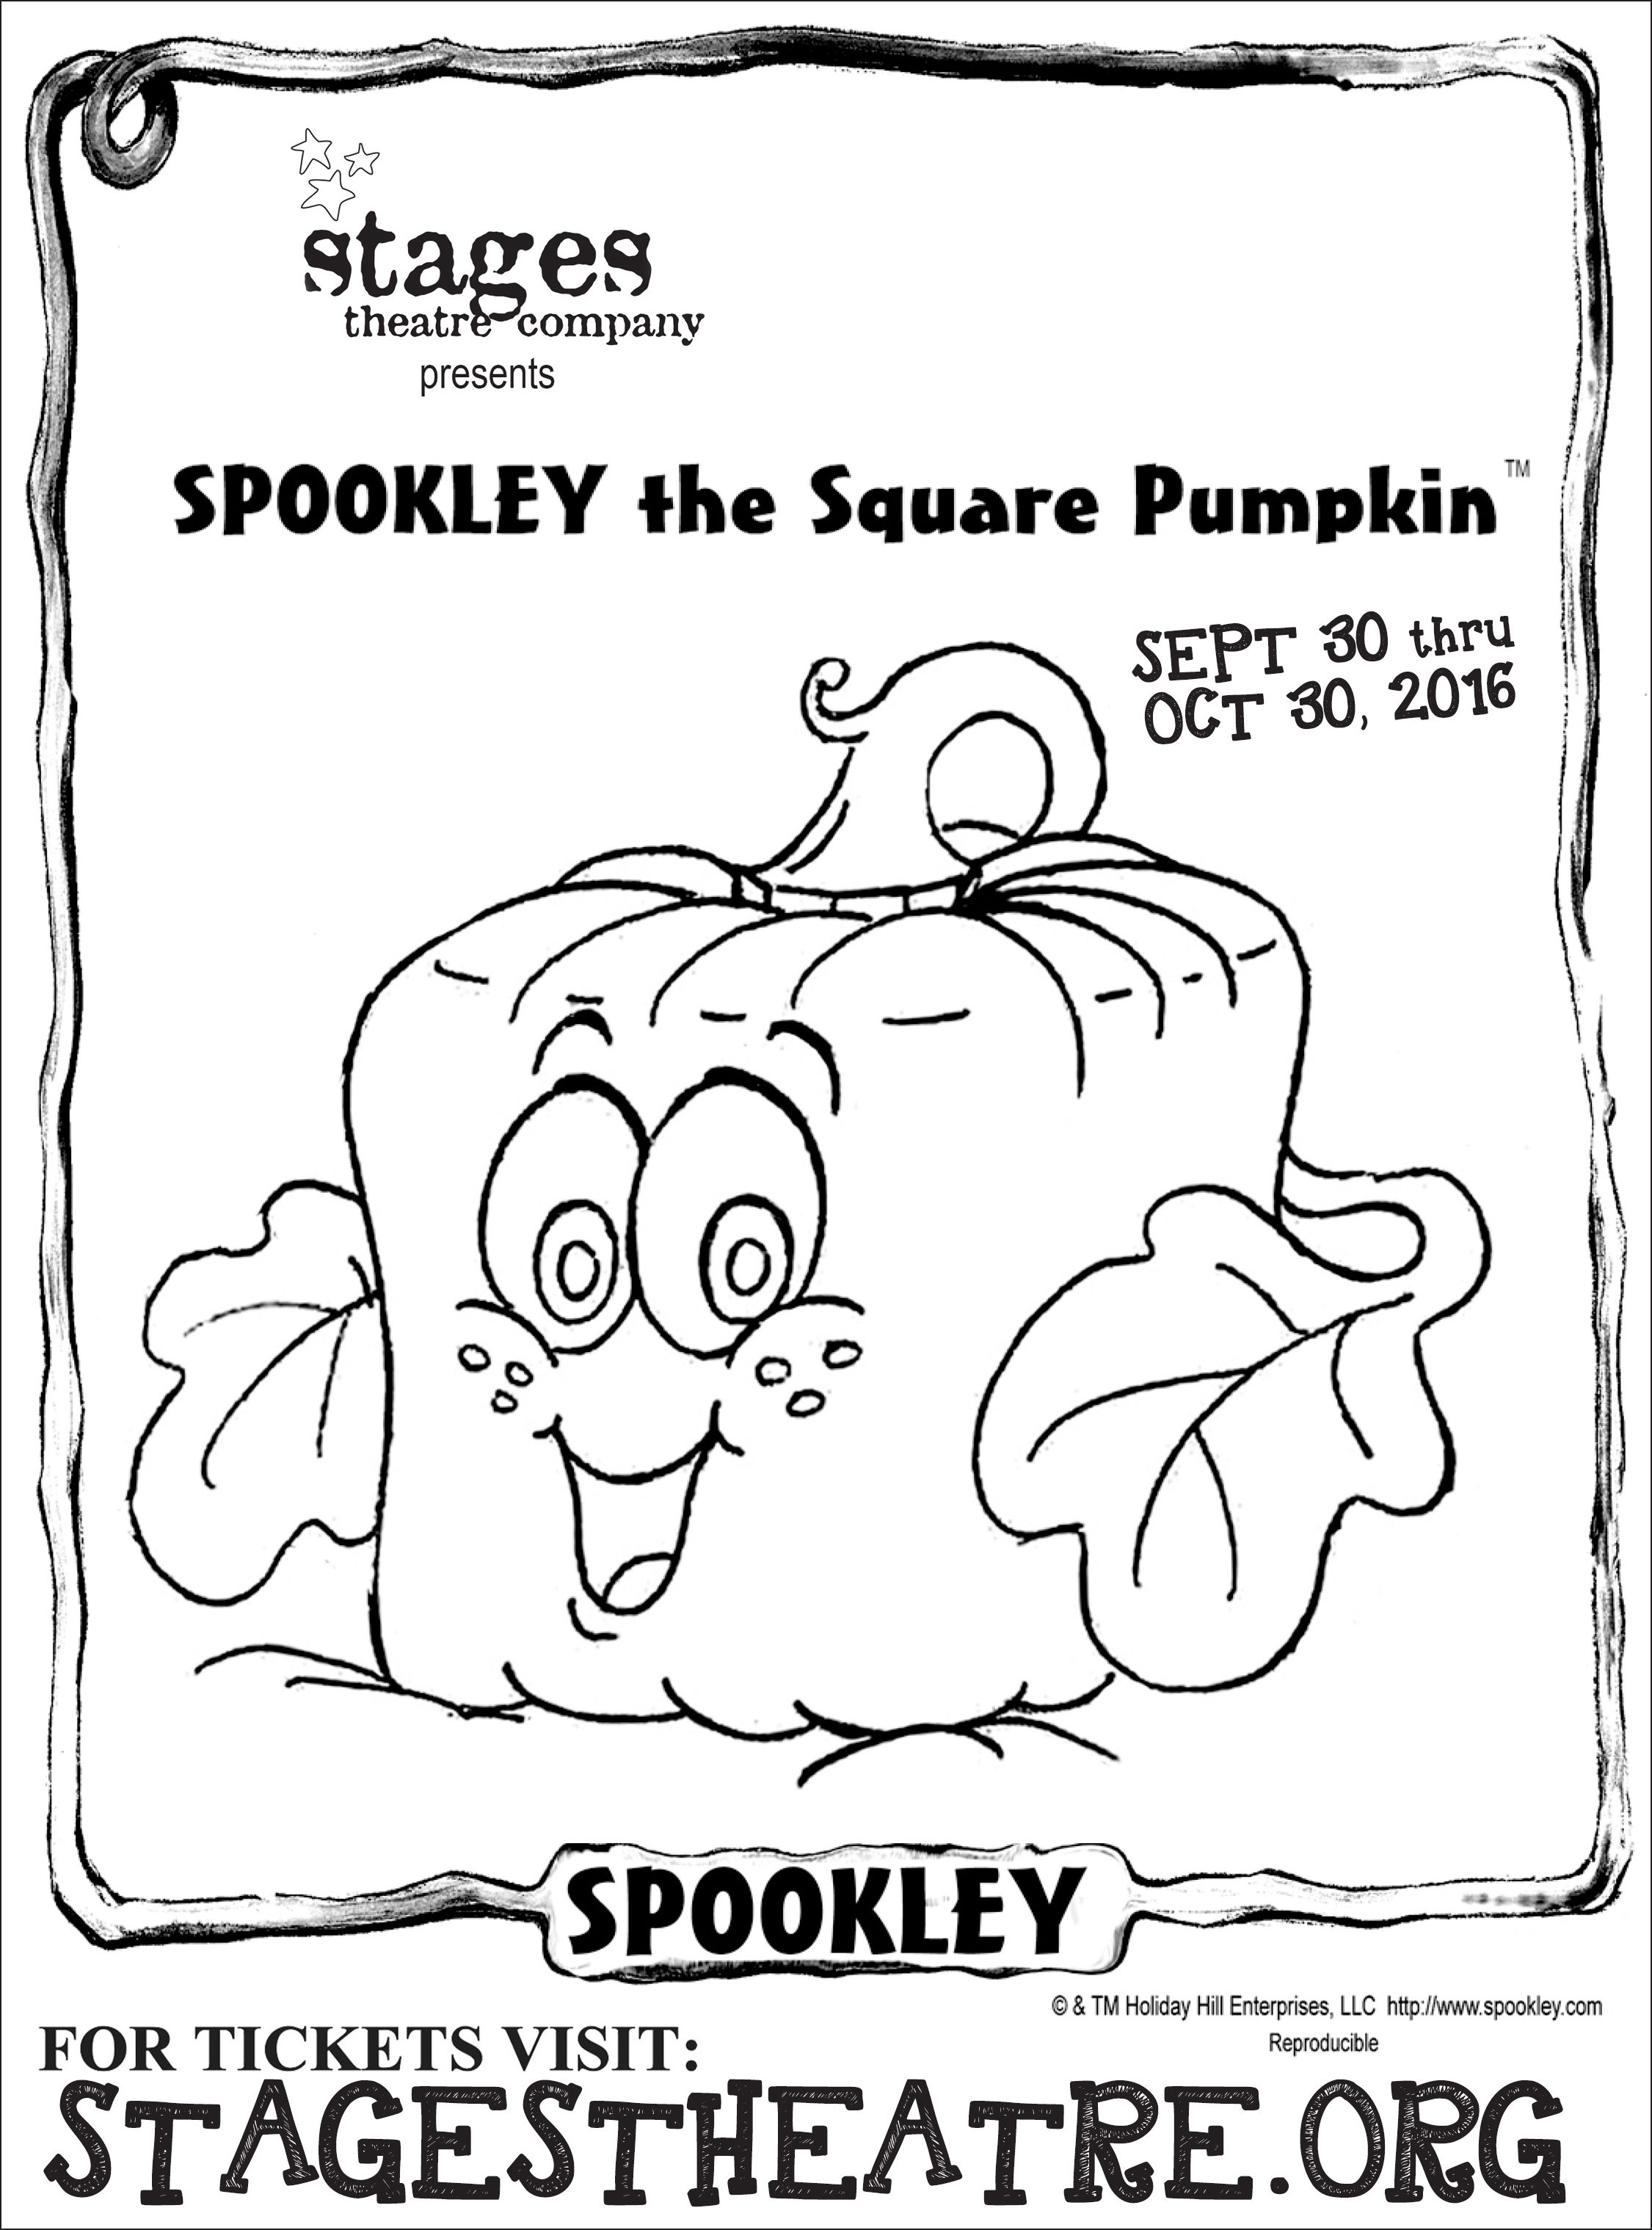 Coloring Sheet for SPOOKLEY THE SQUARE PUMPKIN | Spookley the Square ...